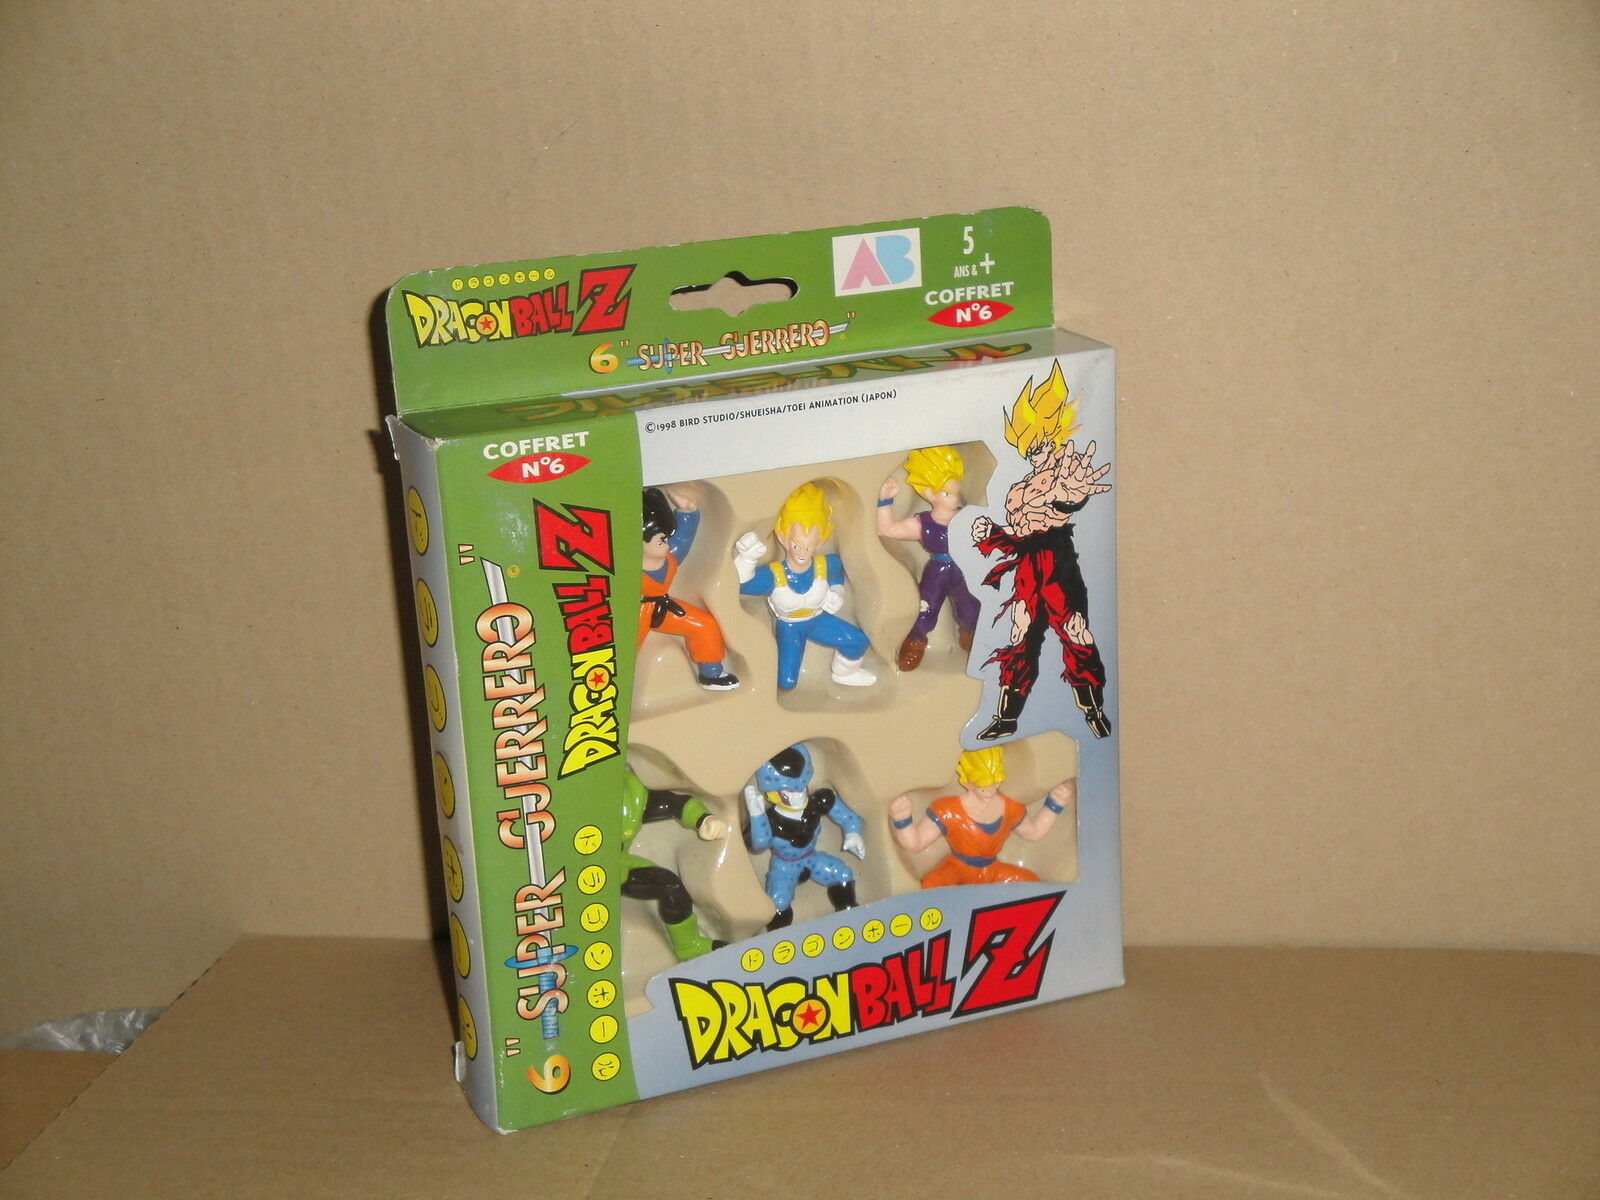 DRAGON BALL Z SUPER GUERERO BY AB TOYS COFFRET   6 WHEN SIX FIGURES NEW IN BOX